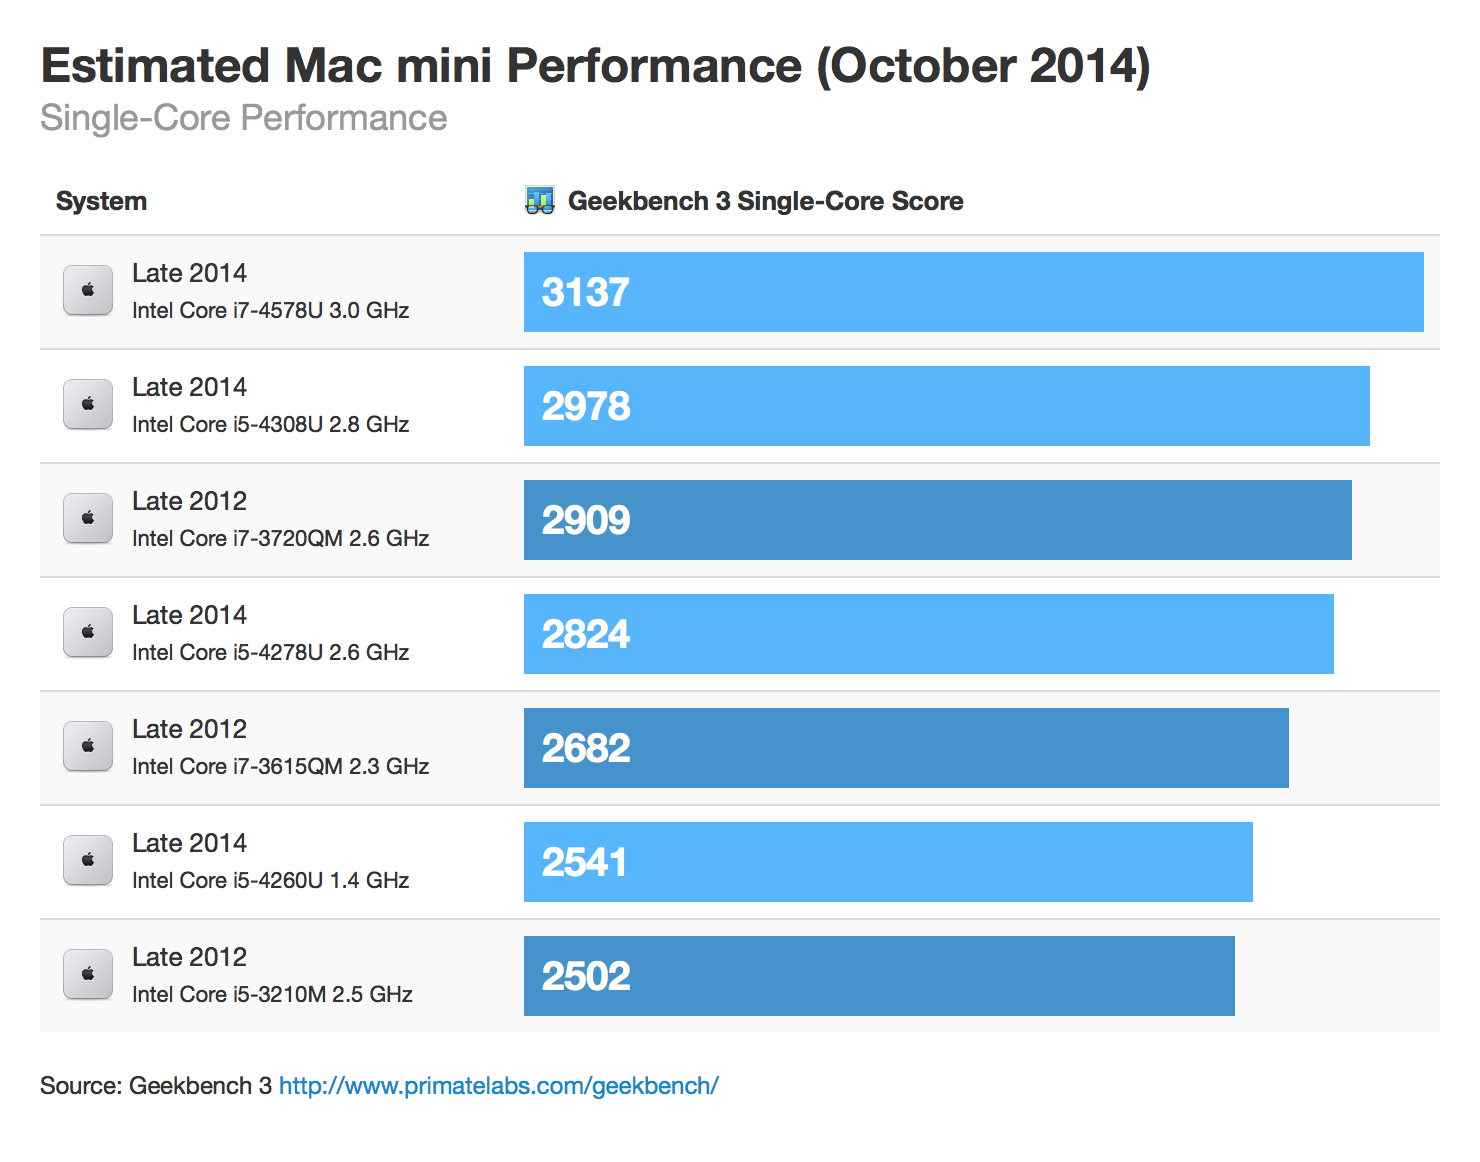 macmini-october-2014-singlecore